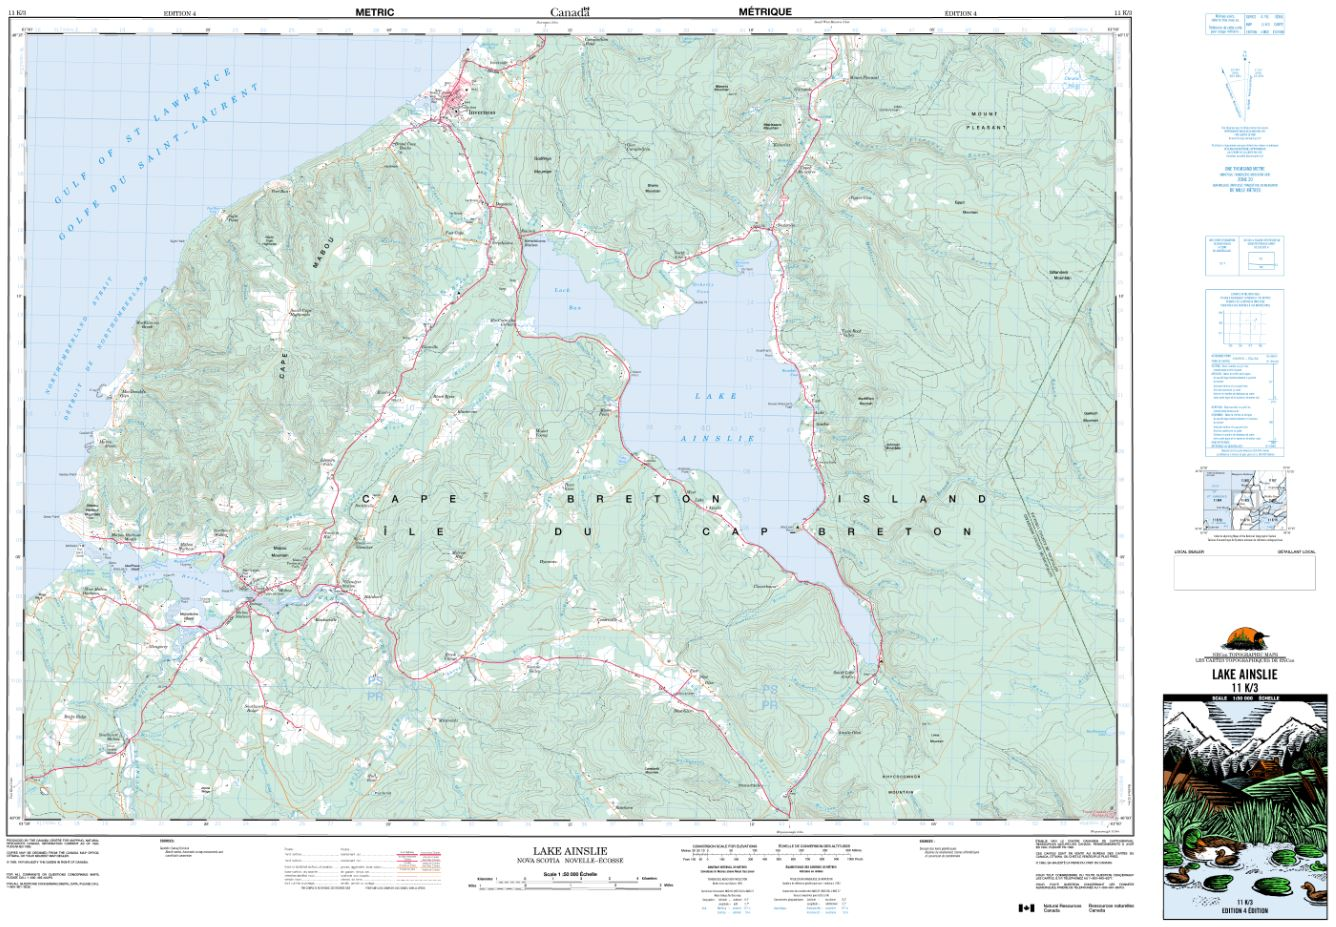 11K/03 Lake Ainslie Topographic Map Nova Scotia